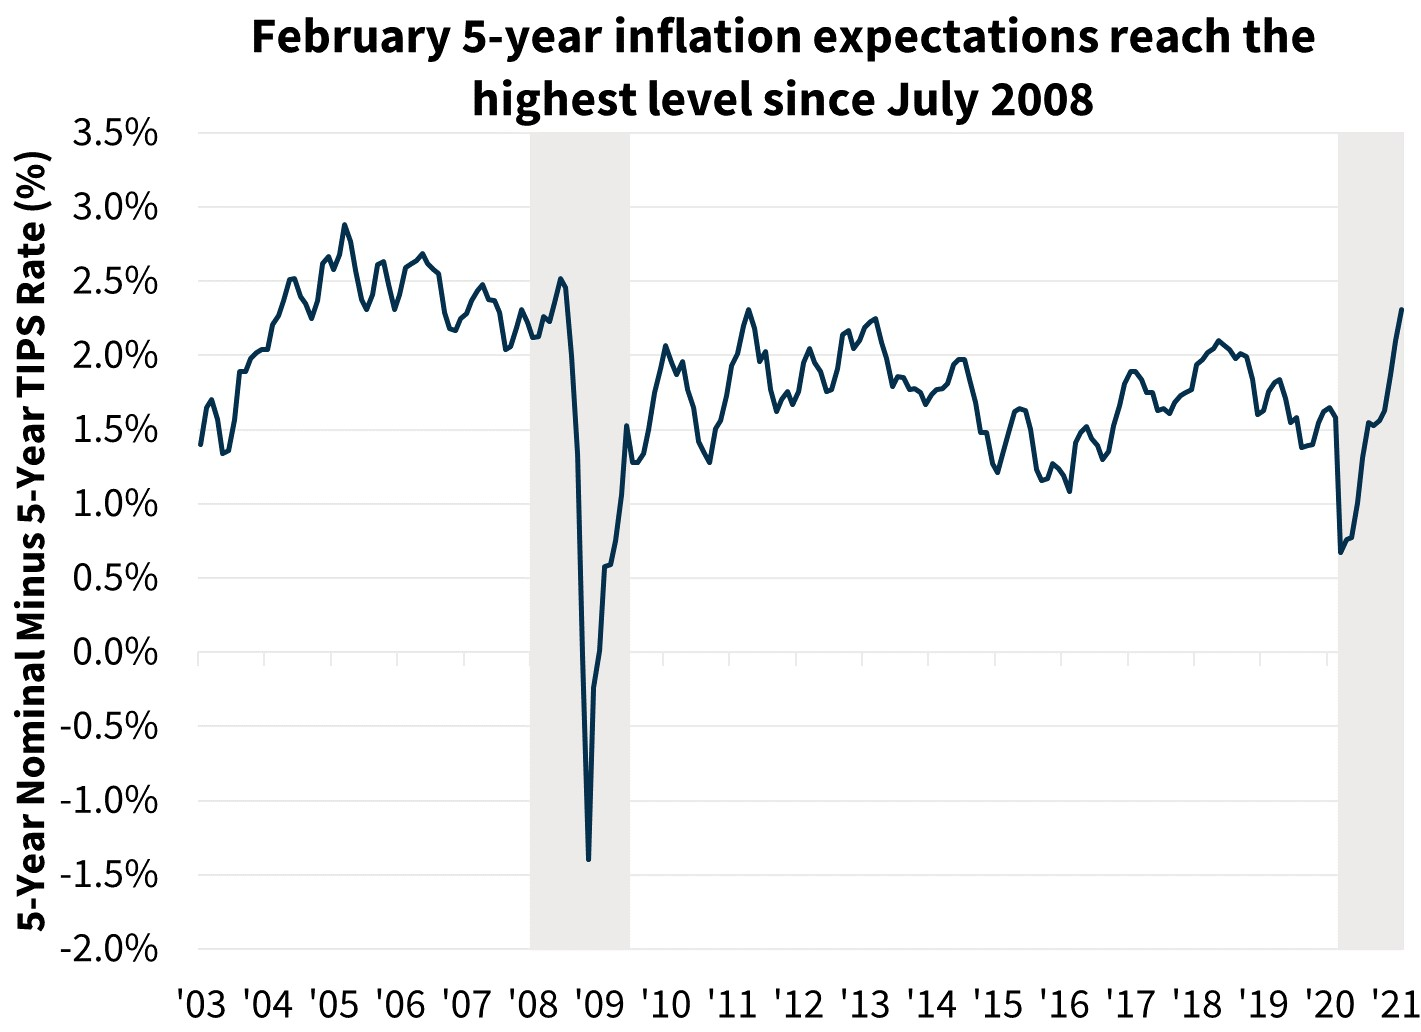 February 5-year inflation expectations reach the highest level since July 2008